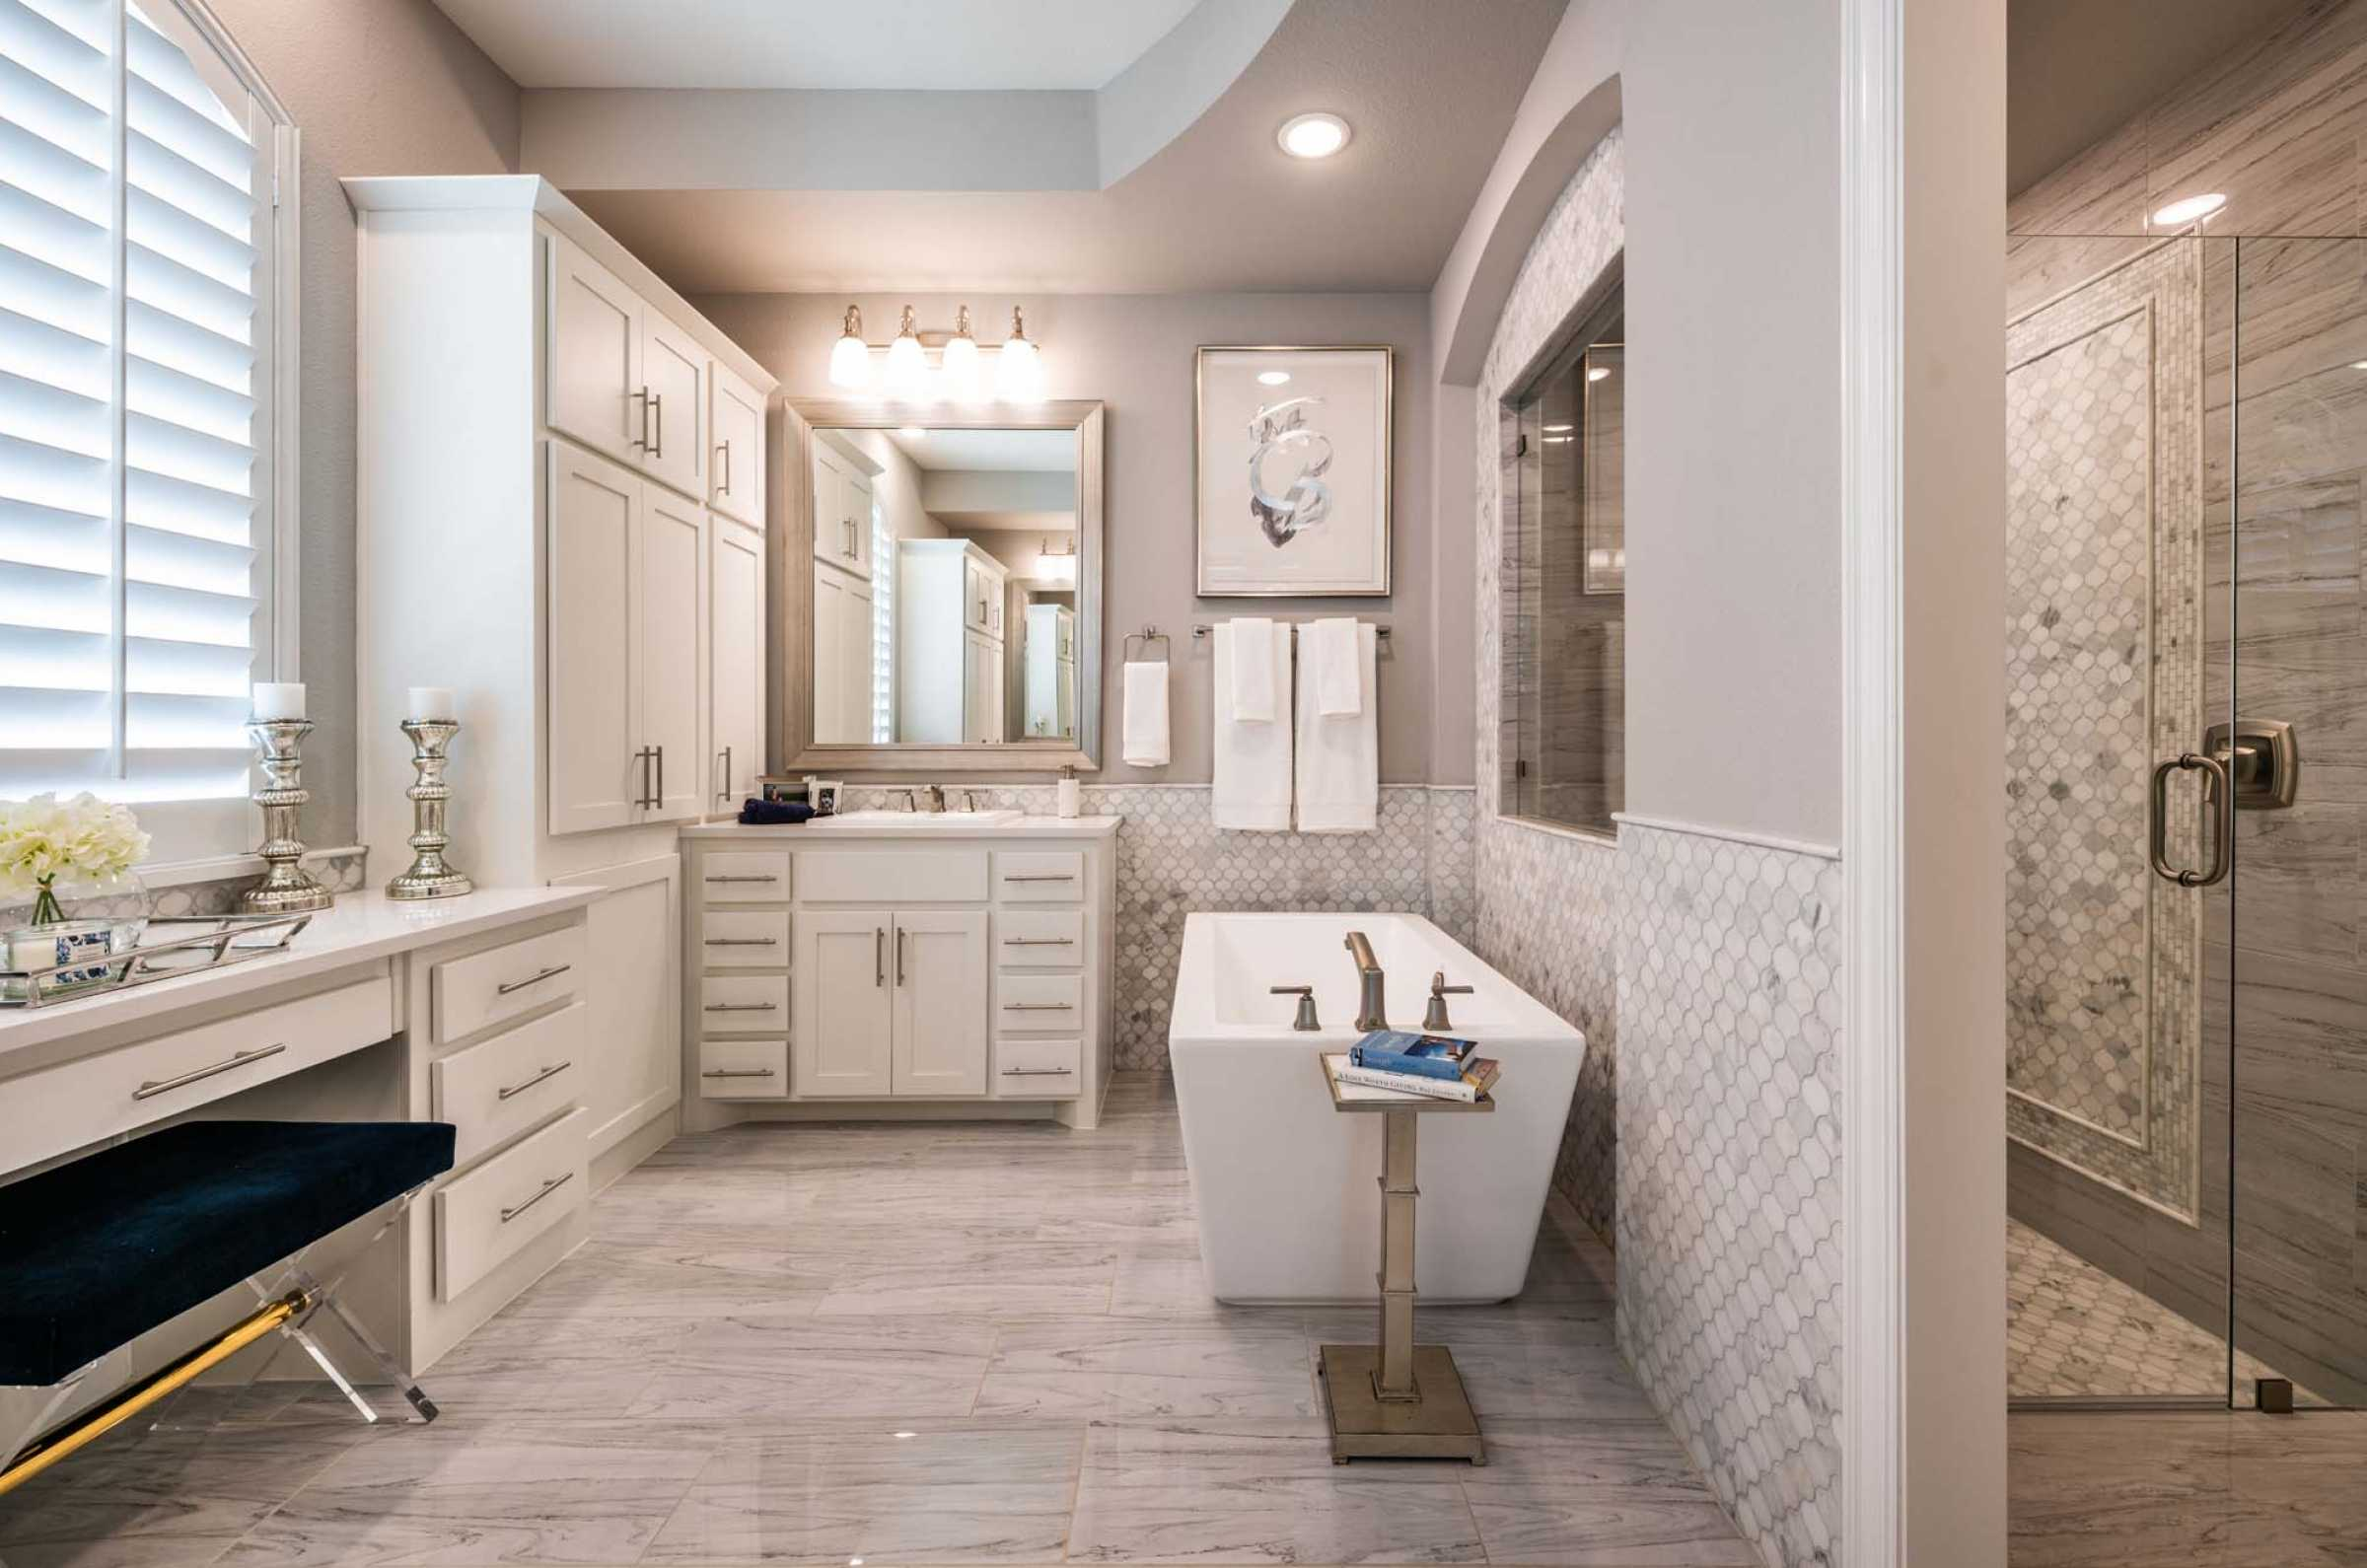 Highland Homes - Texas Homebuilder Serving DFW, Houston, San ... on bathroom remodeling from 1980s, bathroom modern country designs, bathroom shower ideas, bathroom remodeling ideas for ranch style home,